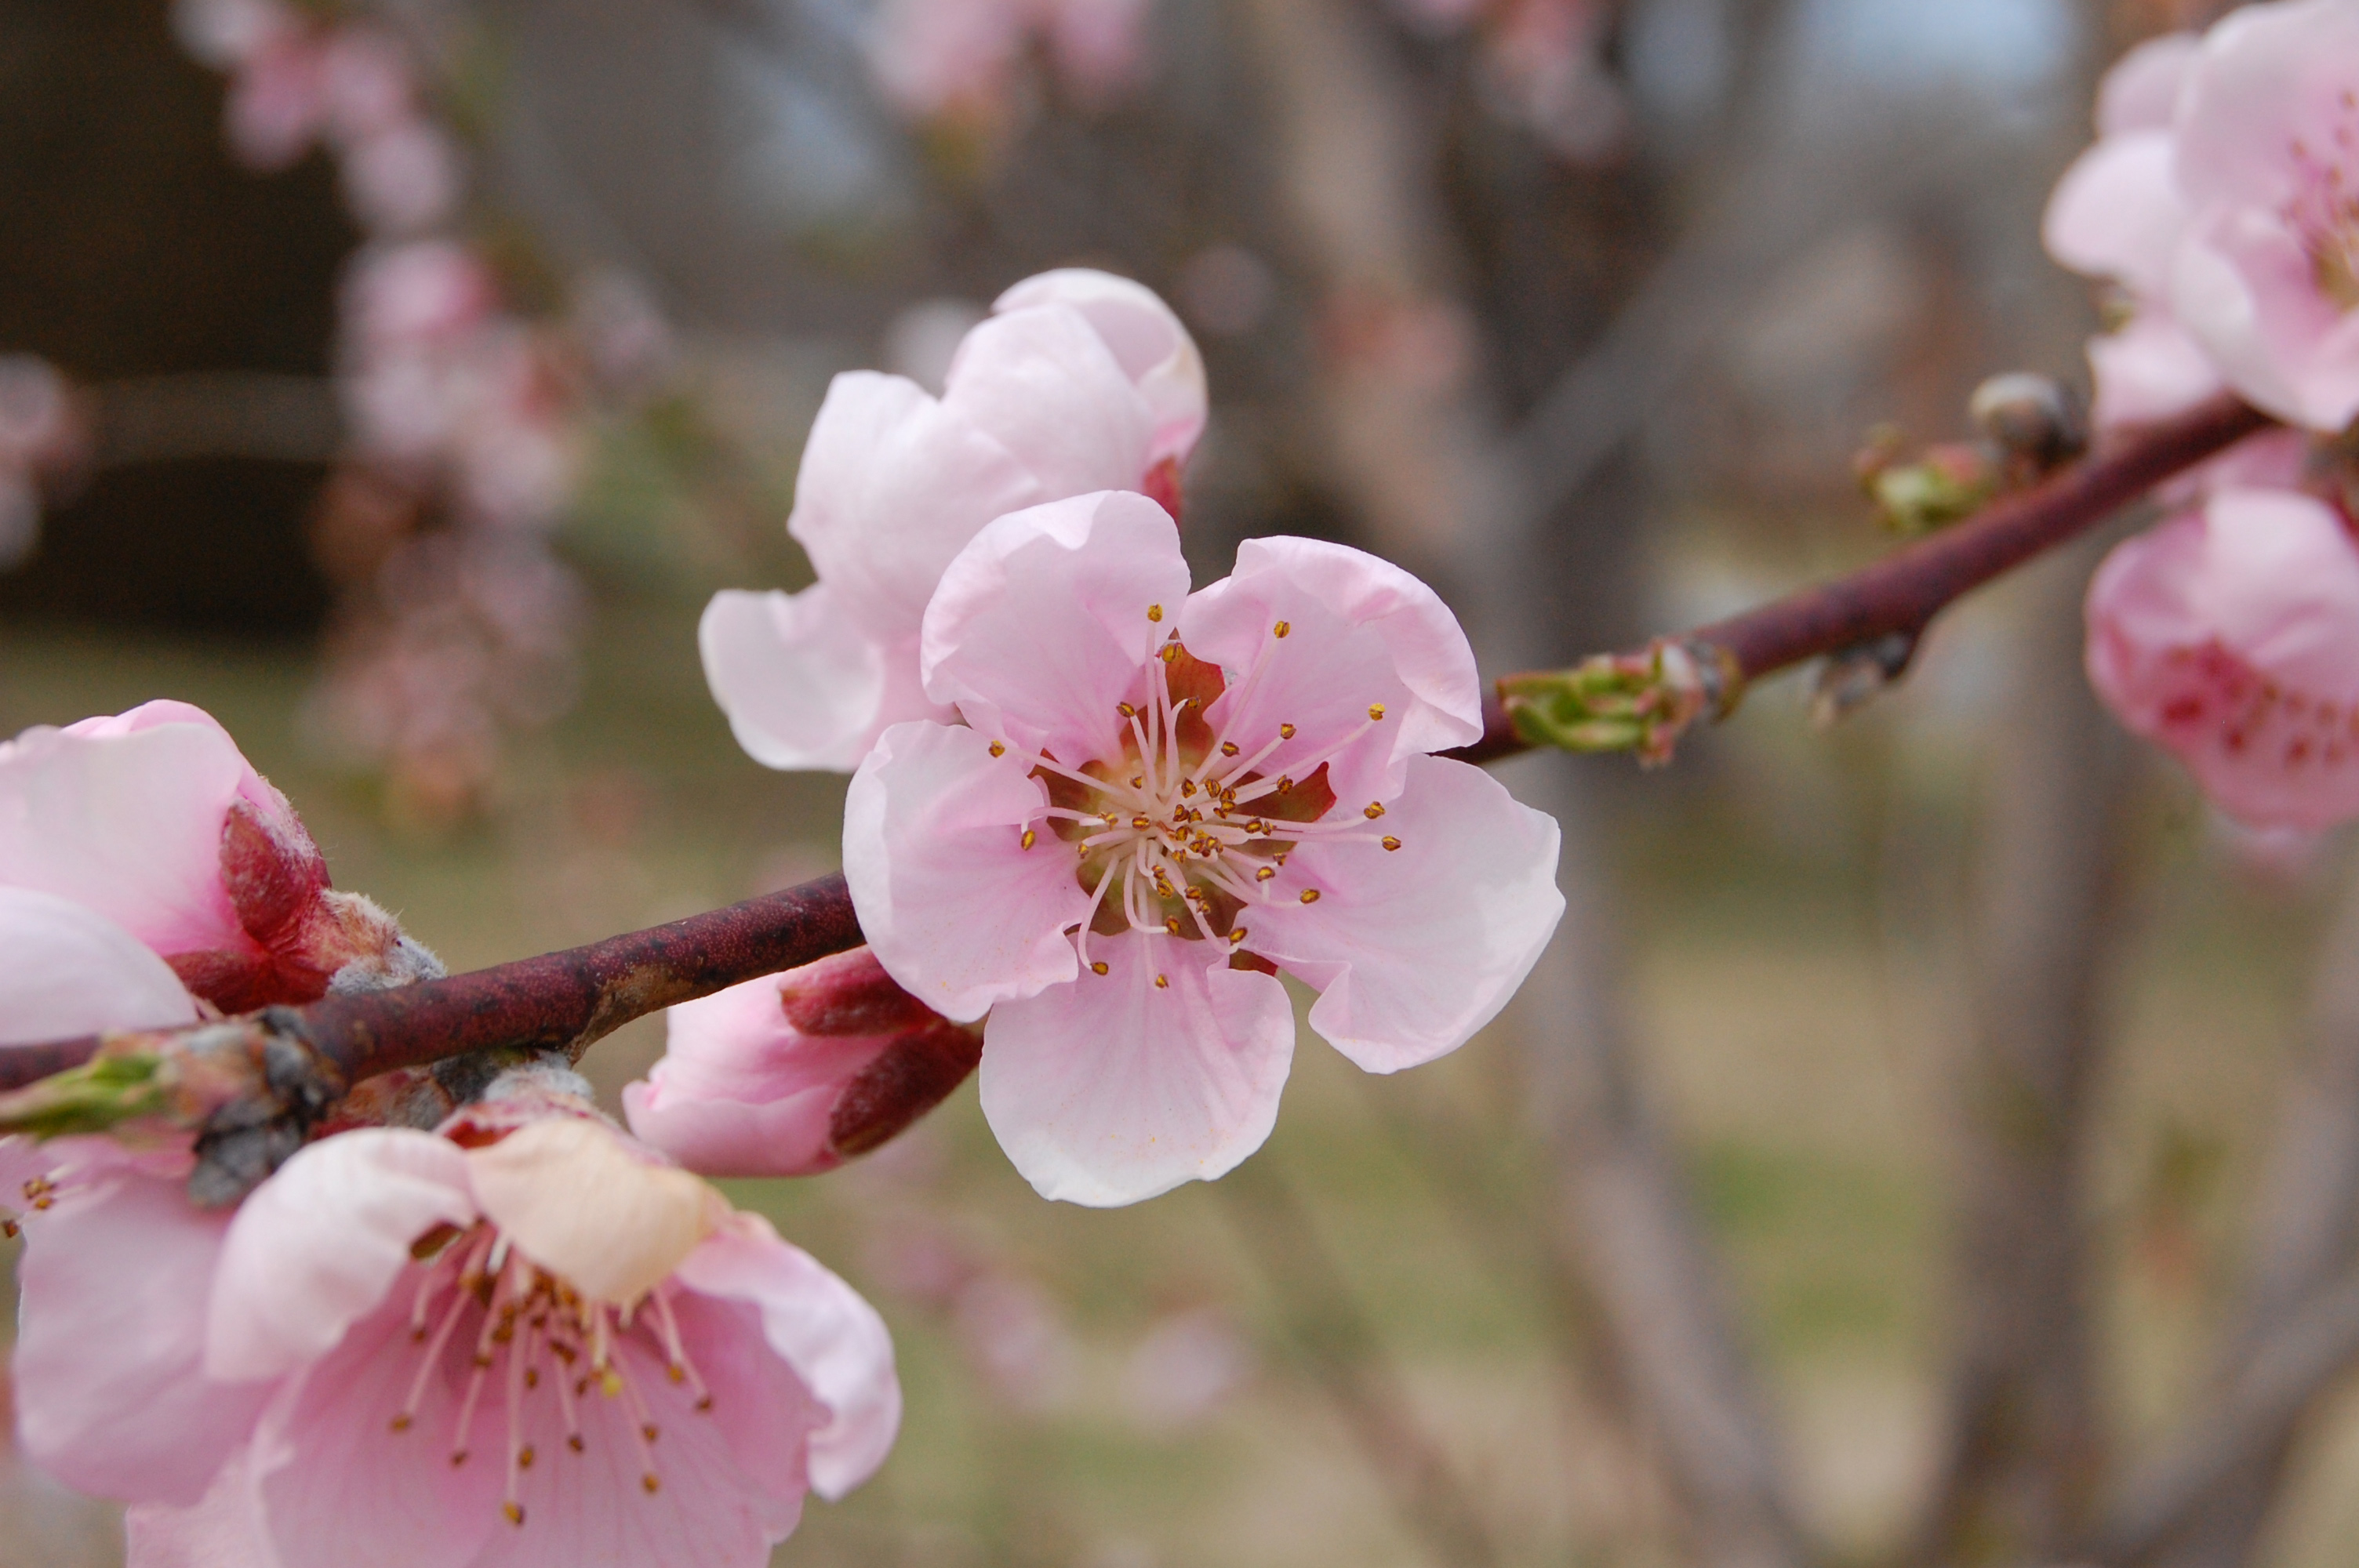 Peach blossom | Wikipedia, St. George News